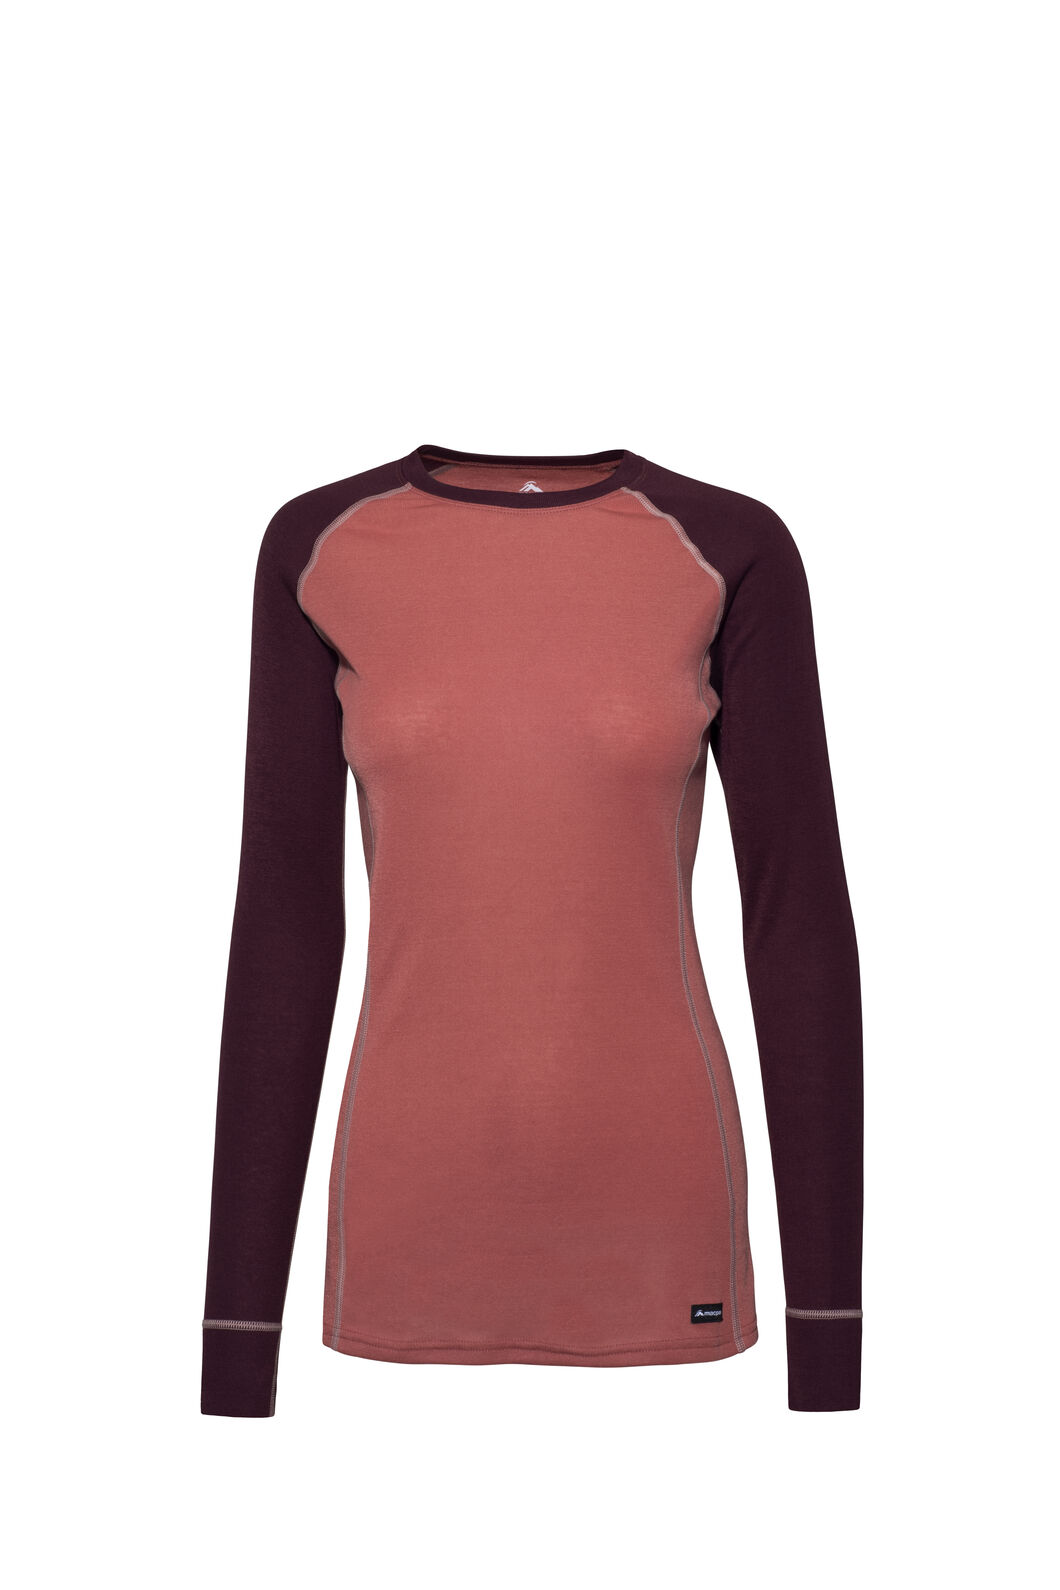 Macpac Geothermal Long Sleeve Top — Women's, Vineyard Wine/Dusty Cedar, hi-res